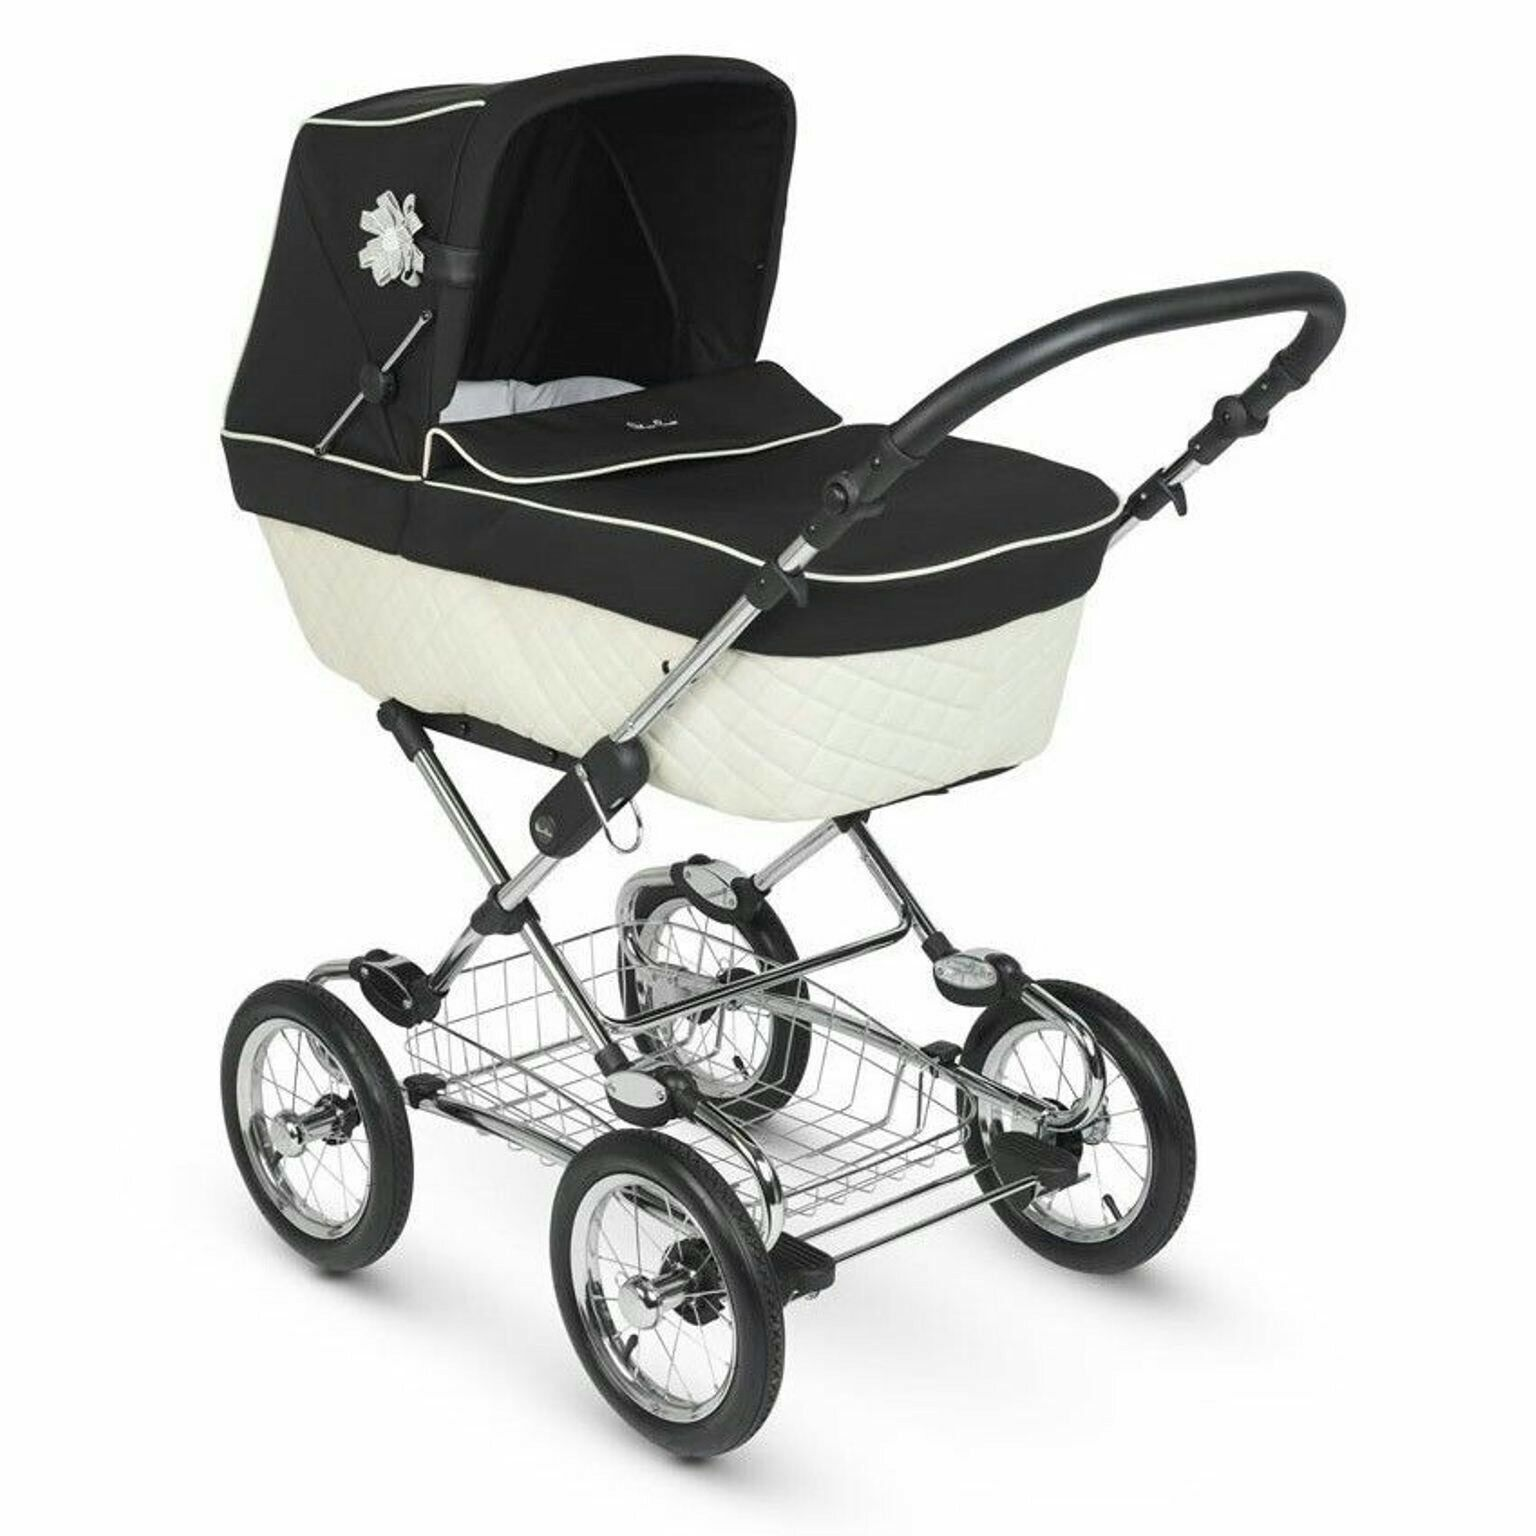 Silver Cross Elegance Buggy Board Silver Cross Sleepover Elegance Cream Black Pushchairs Single Seat Stroller